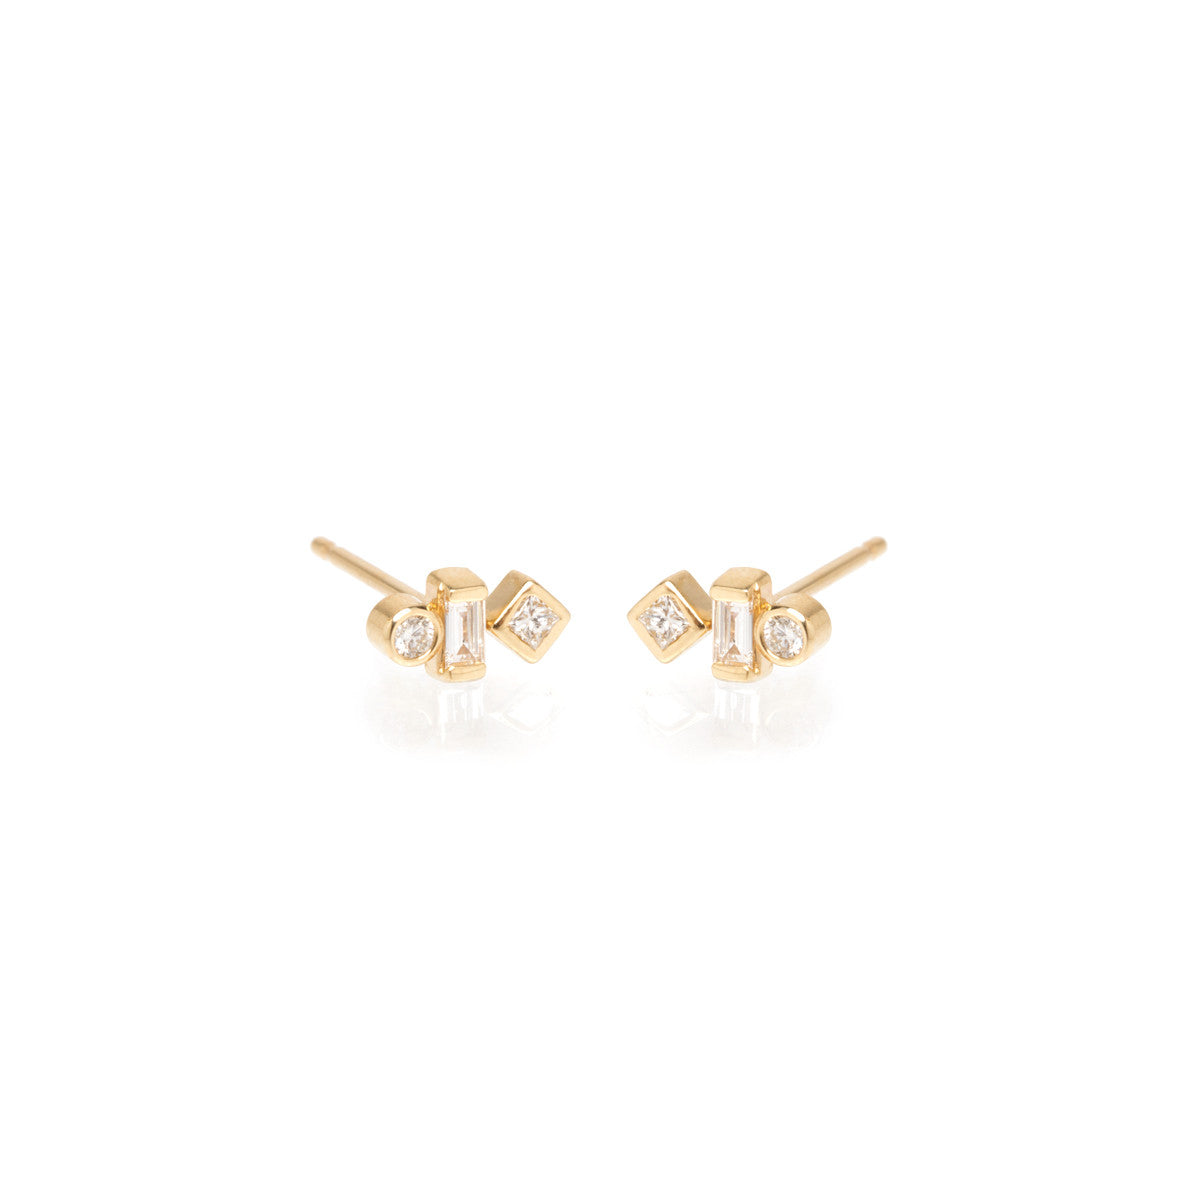 brillant studs k white weissgold ear diamonds shop mit ohrstecker gold kleinem earrings diamond schmuckwerk small with de